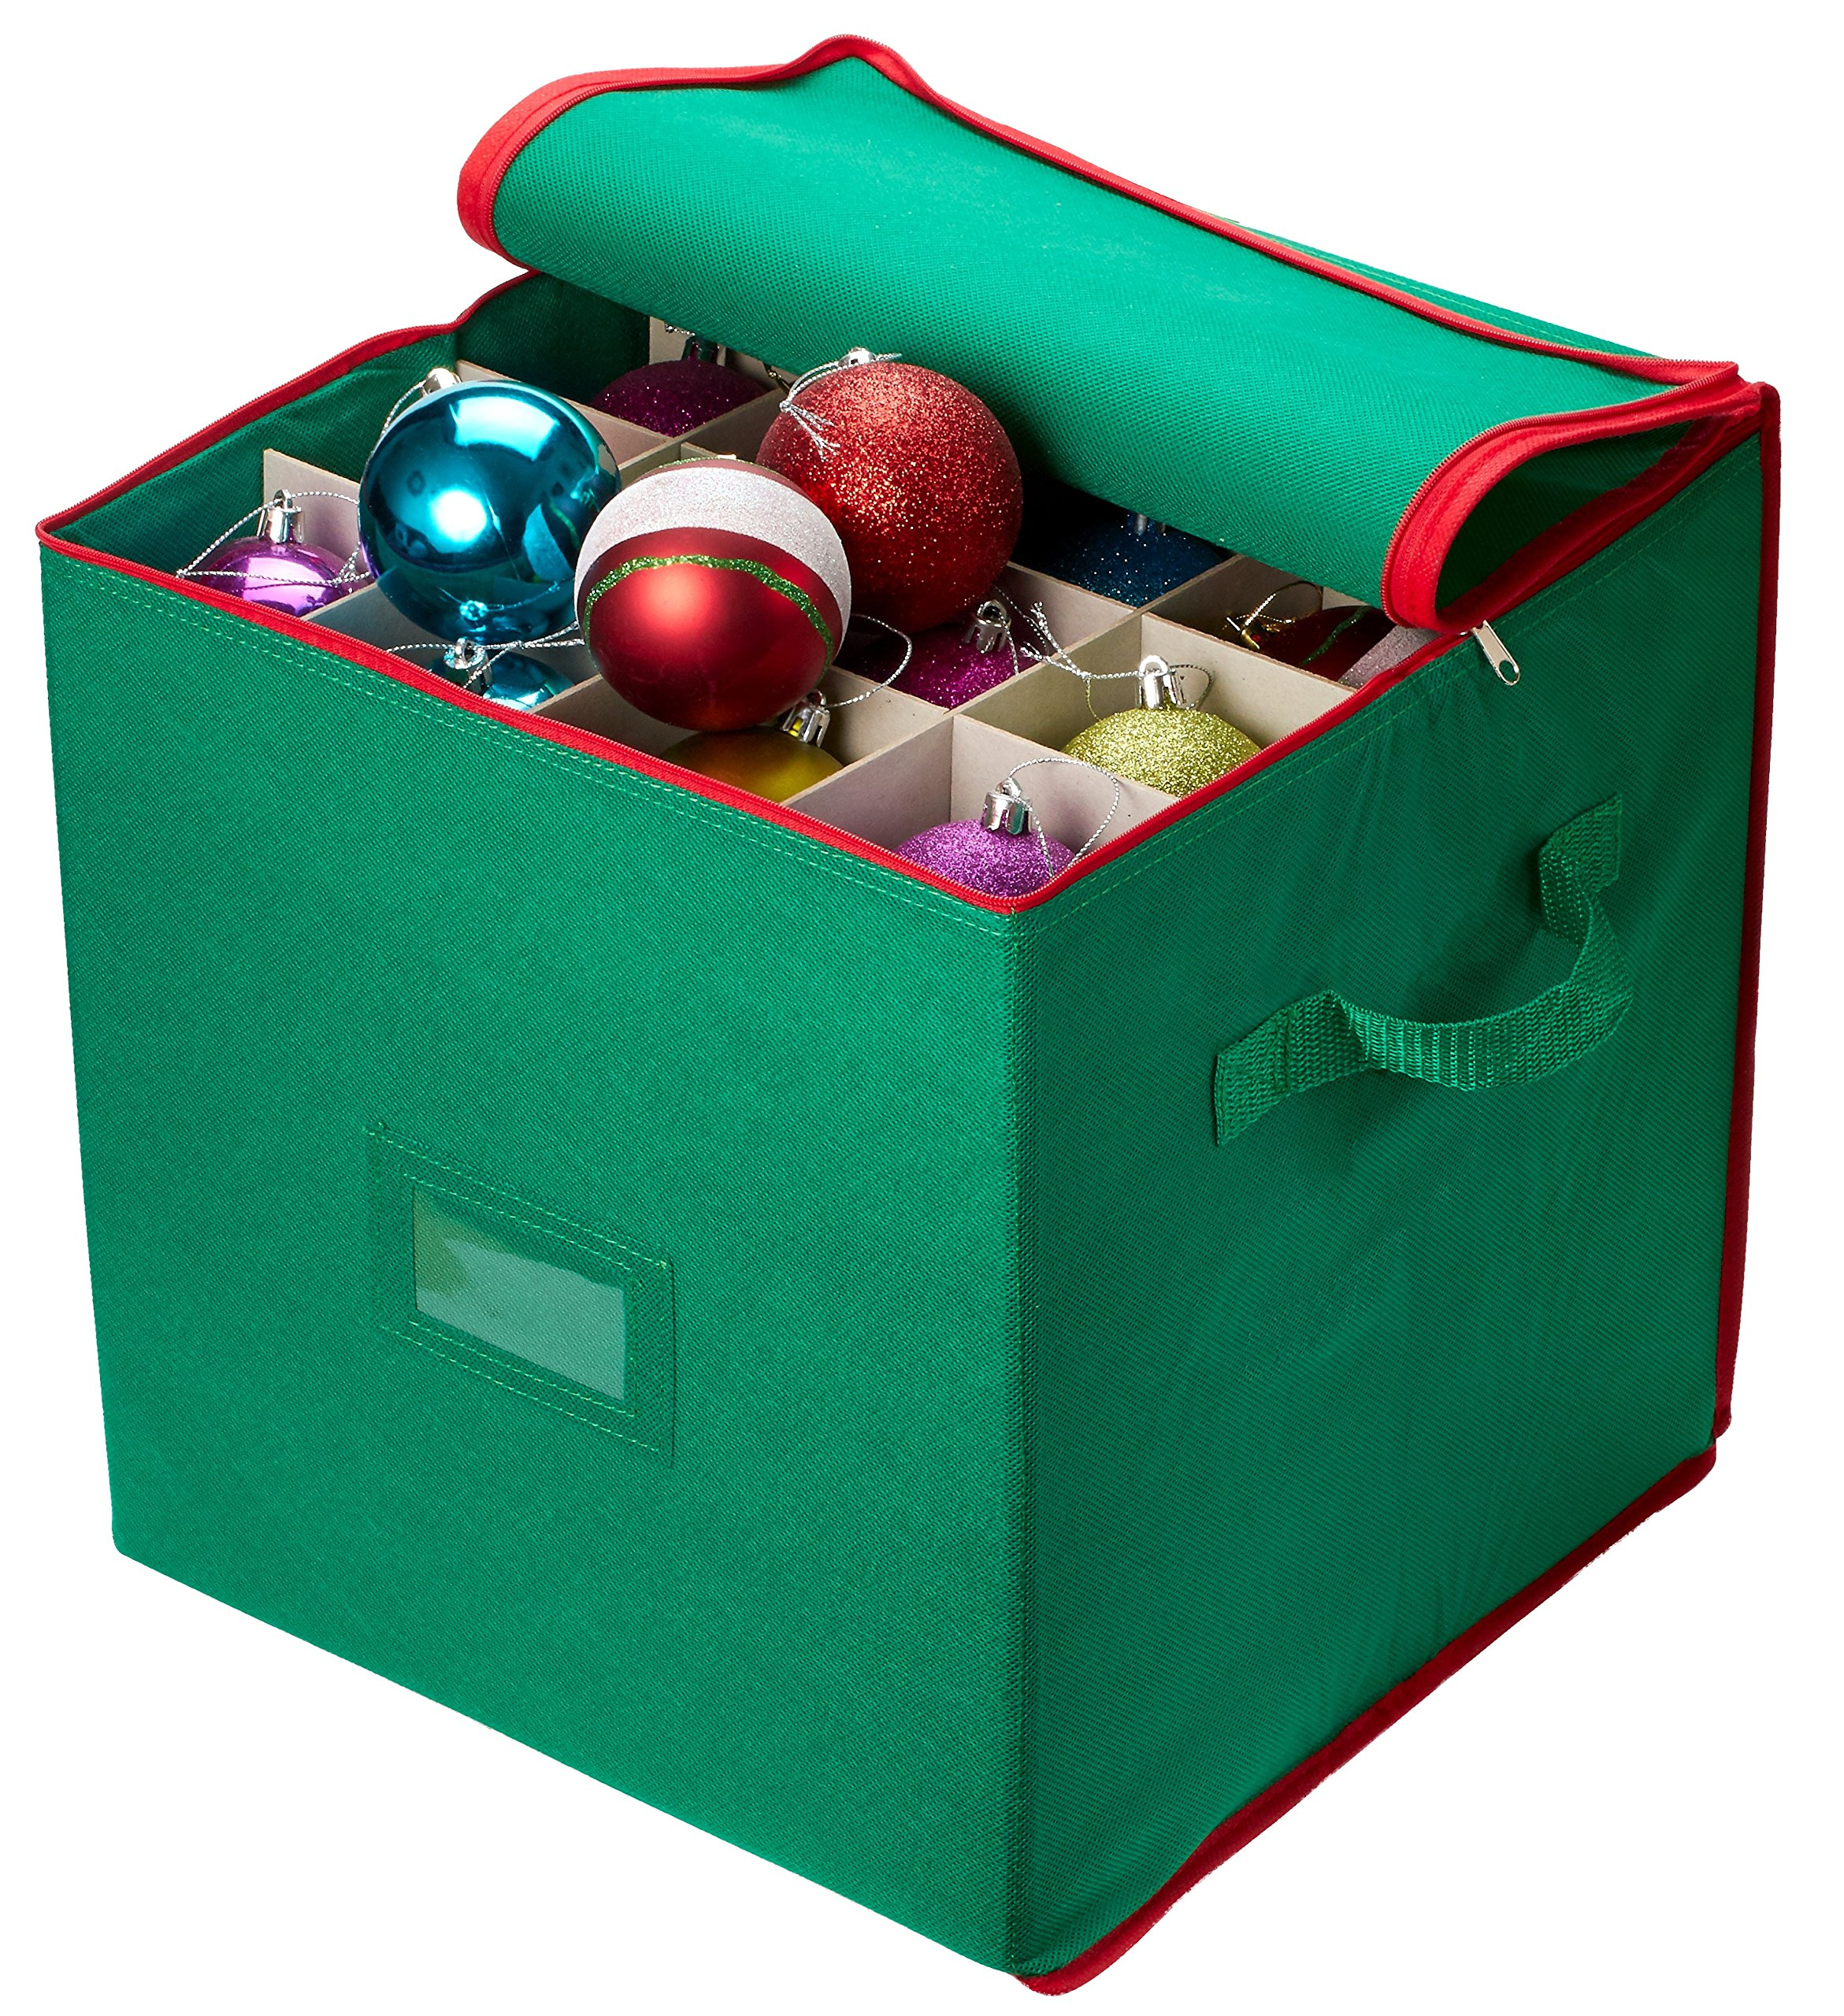 Christmas Ornament Storage - Stores up to 64 Holiday Ornaments, Adjustable Dividers, Zippered Closure with Two Handles. Attractive Storage Box Keeps Holiday Decorations Clean and Dry for Next Season.